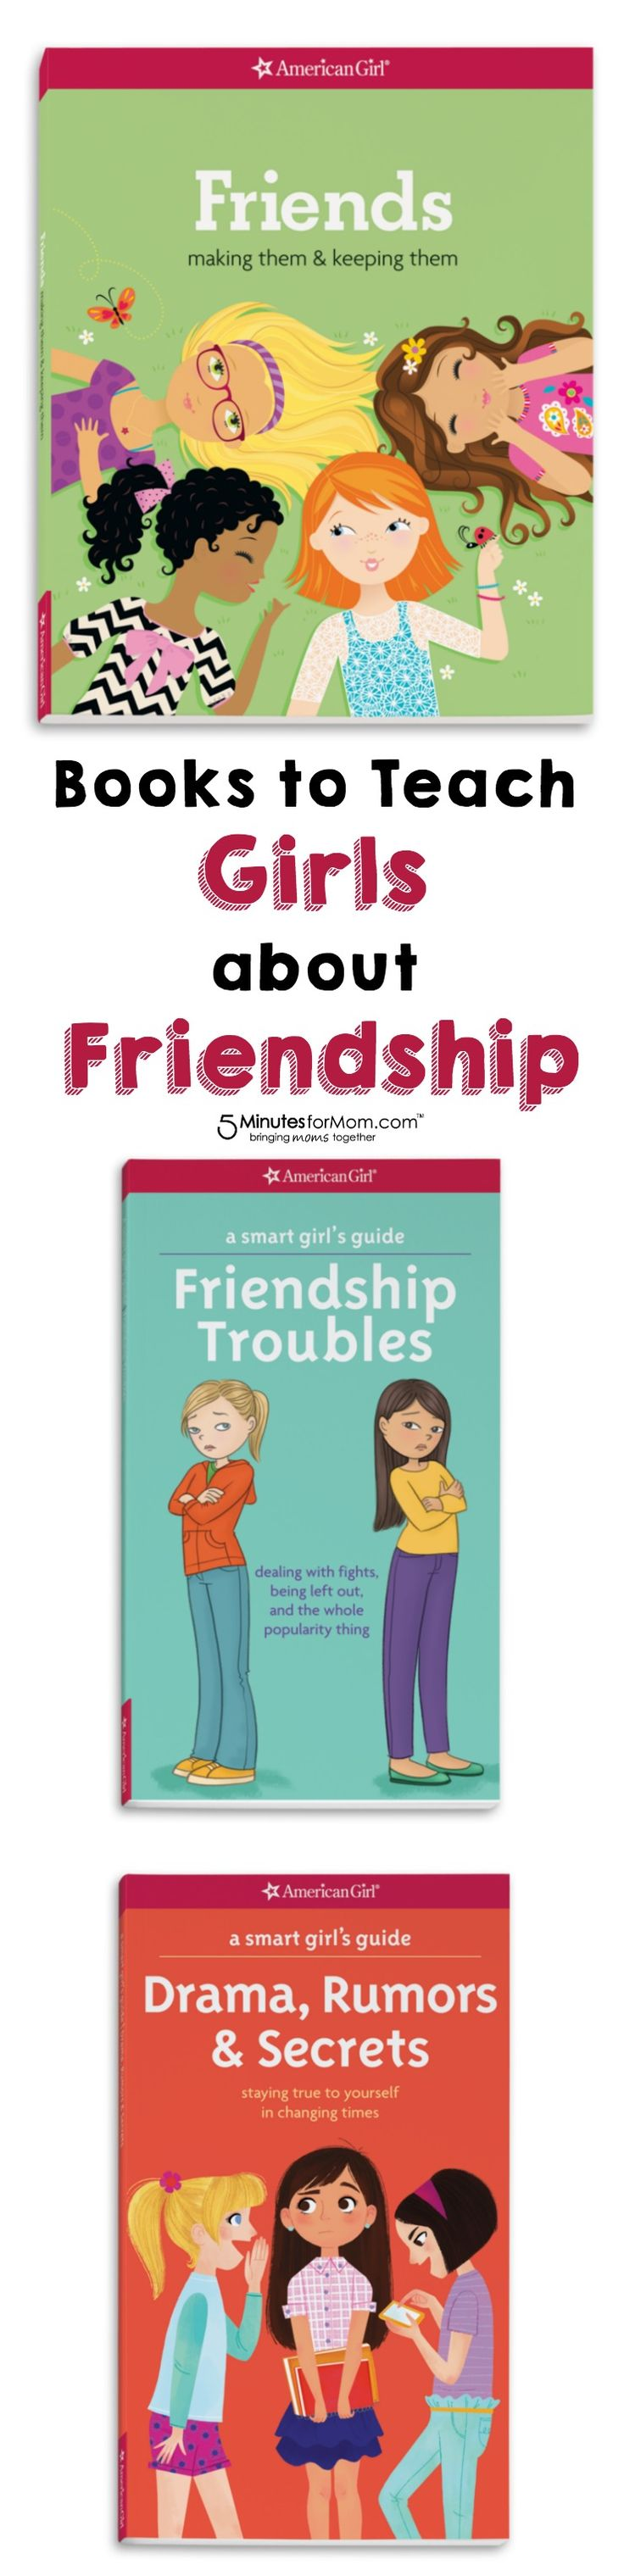 How to make your own female sonic character ehow - Books To Teach Girls About Friendship These American Girl Books Make It Easier To Get